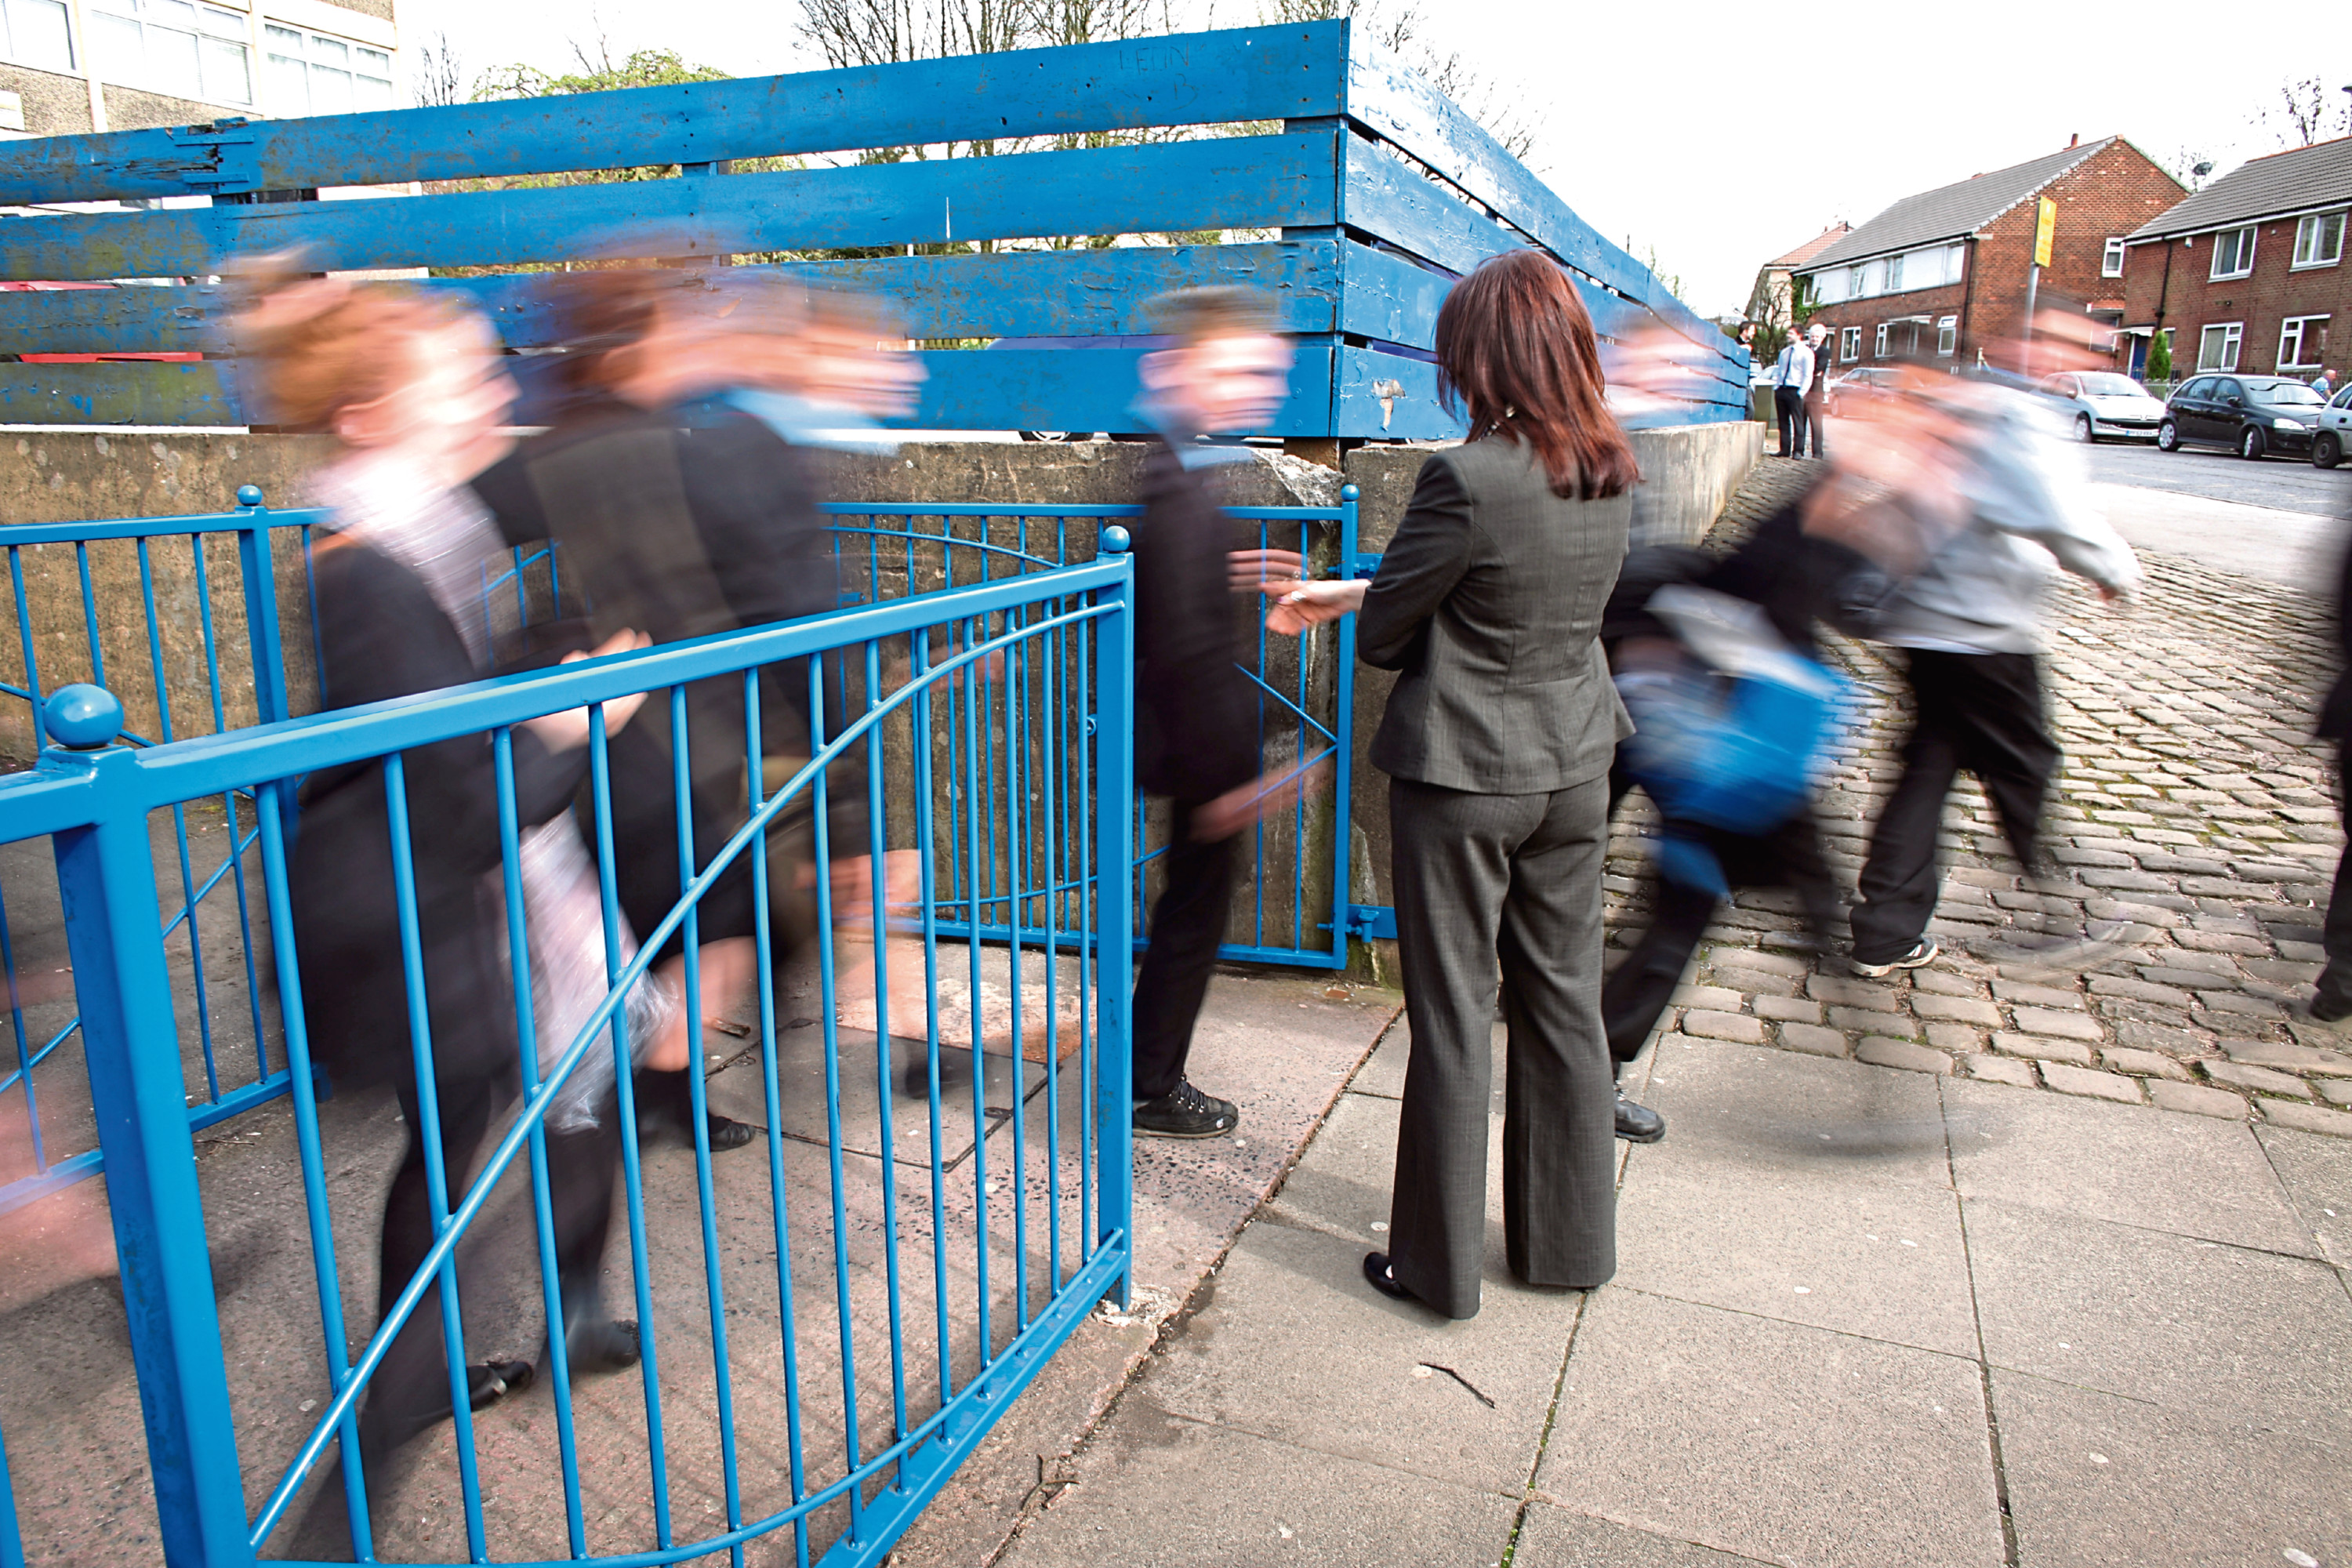 According to the teaching union's survey 57% of teaching staff have been attacked in the past five years